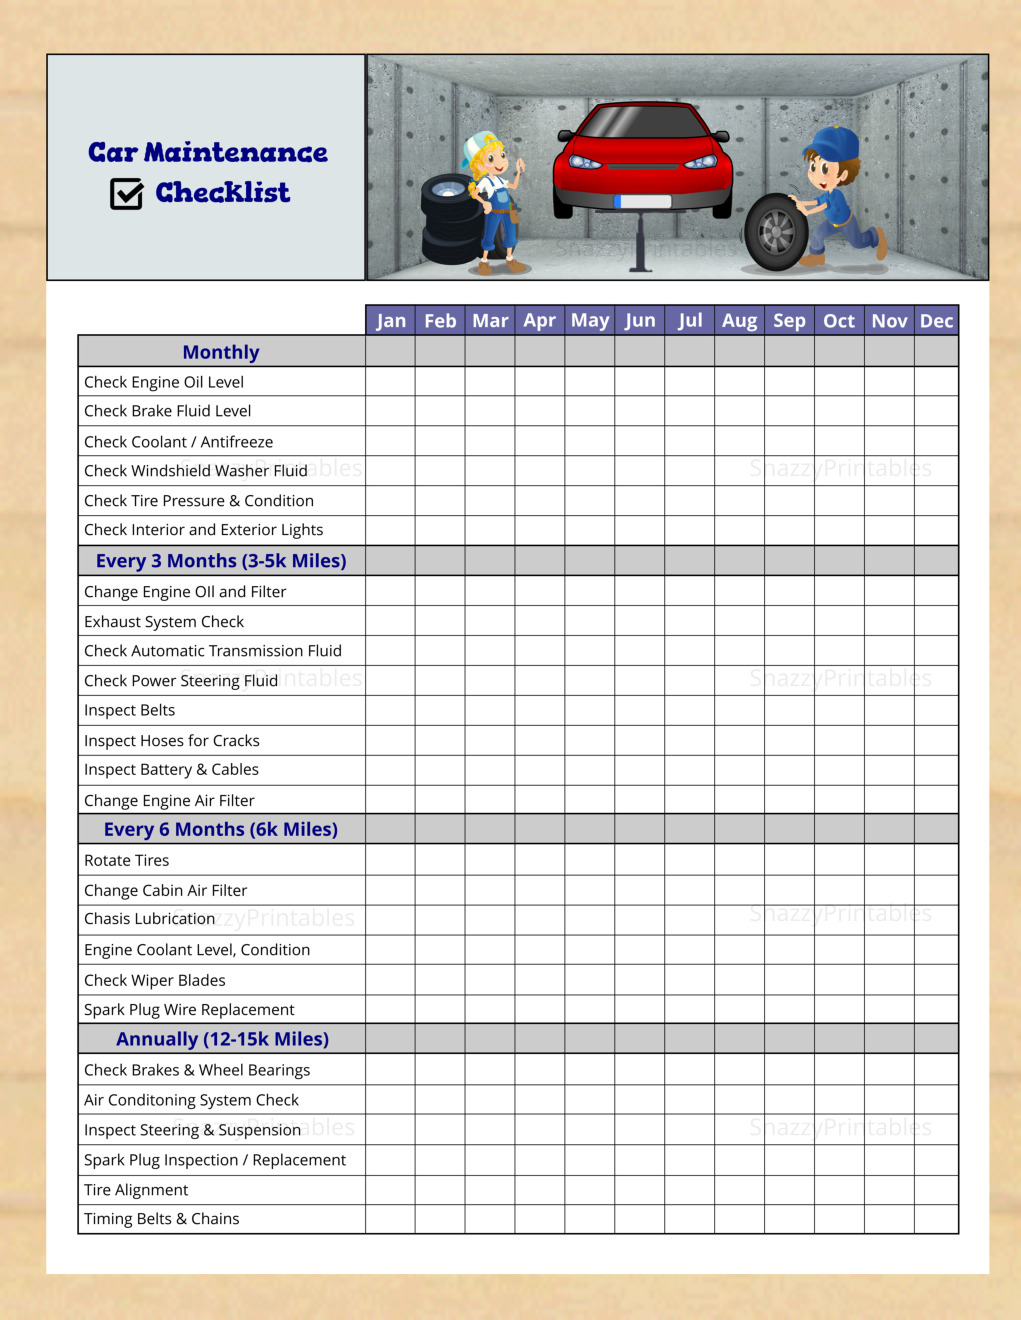 Car Maintenance Checklist - Instant Download PDF